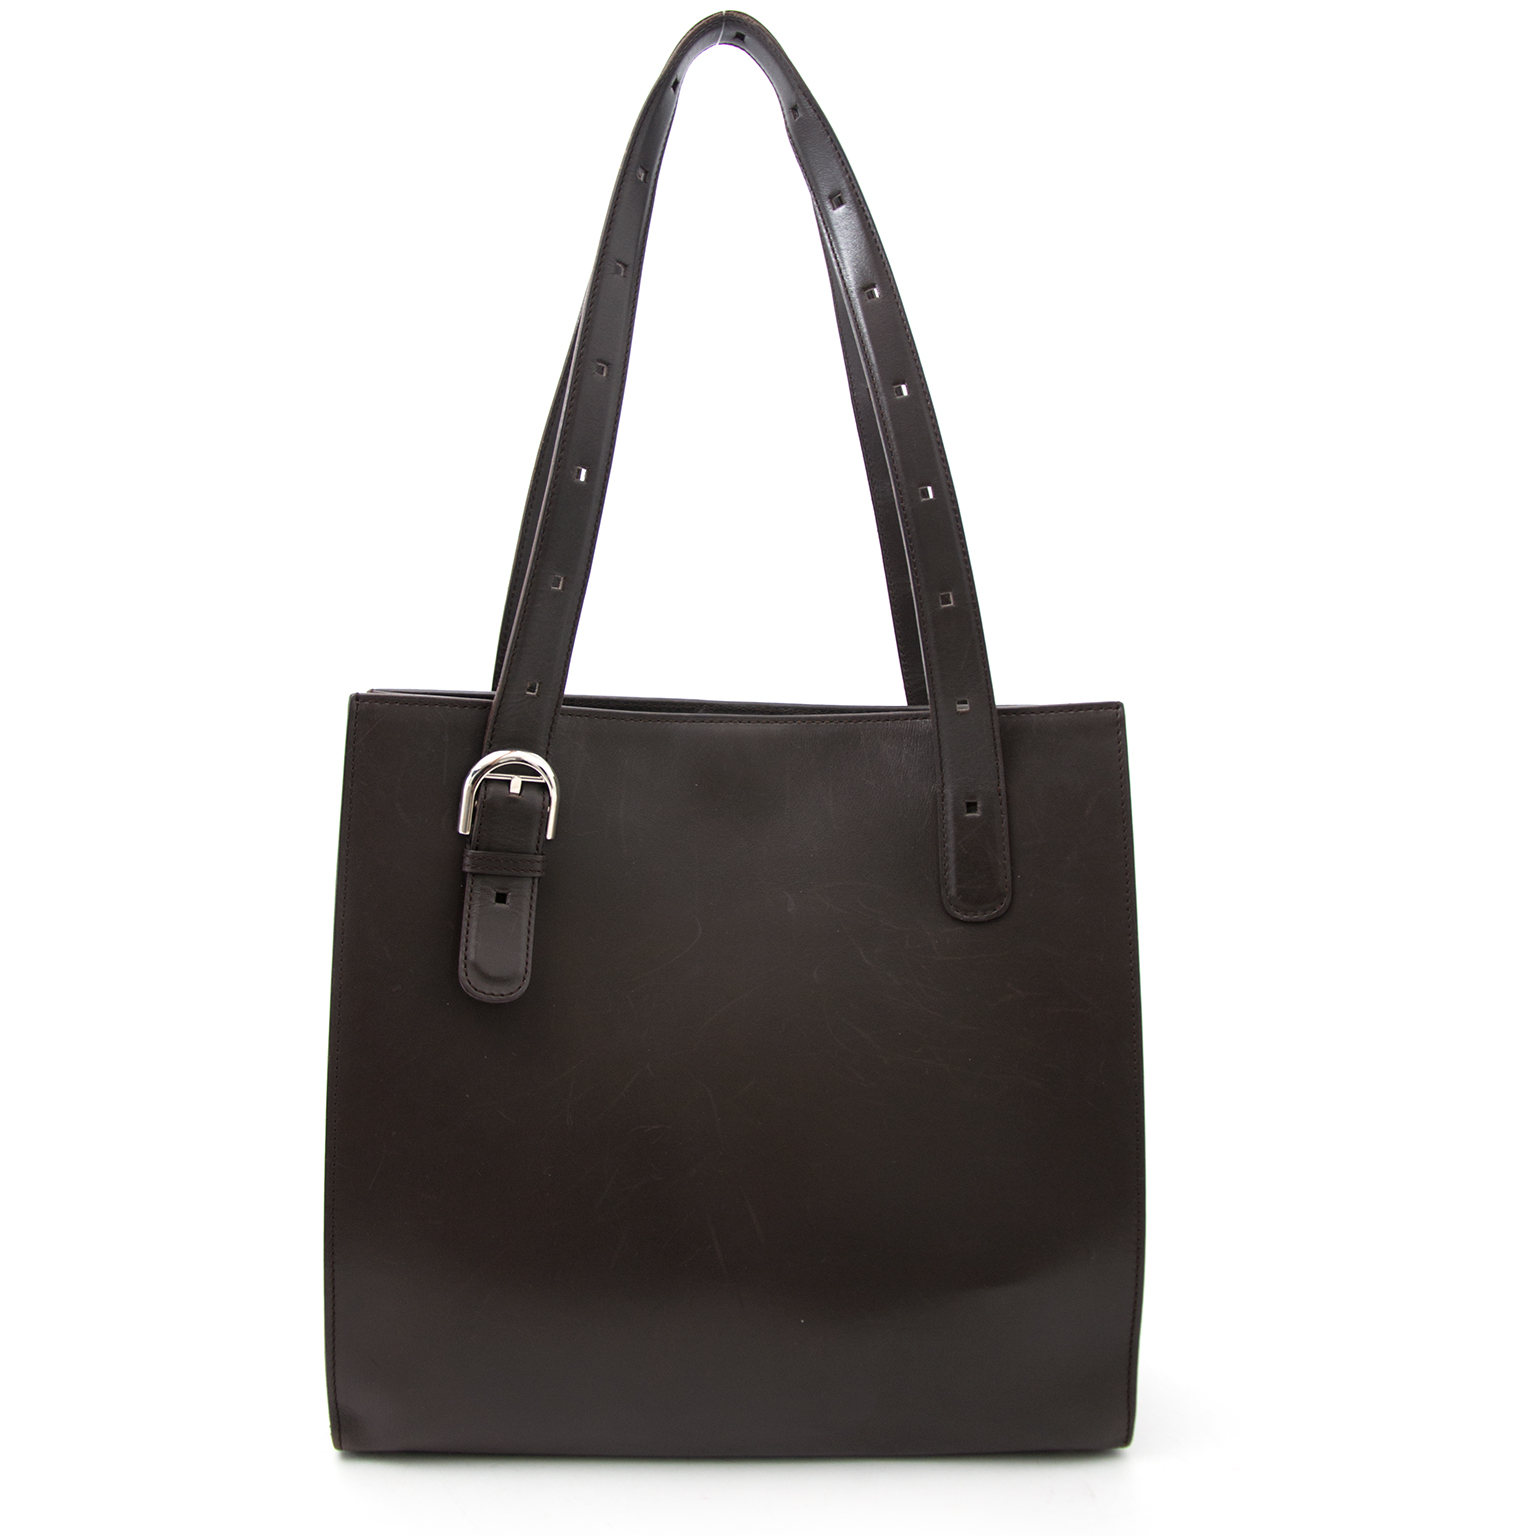 Looking for a Delvaux Dark Brown Tote?